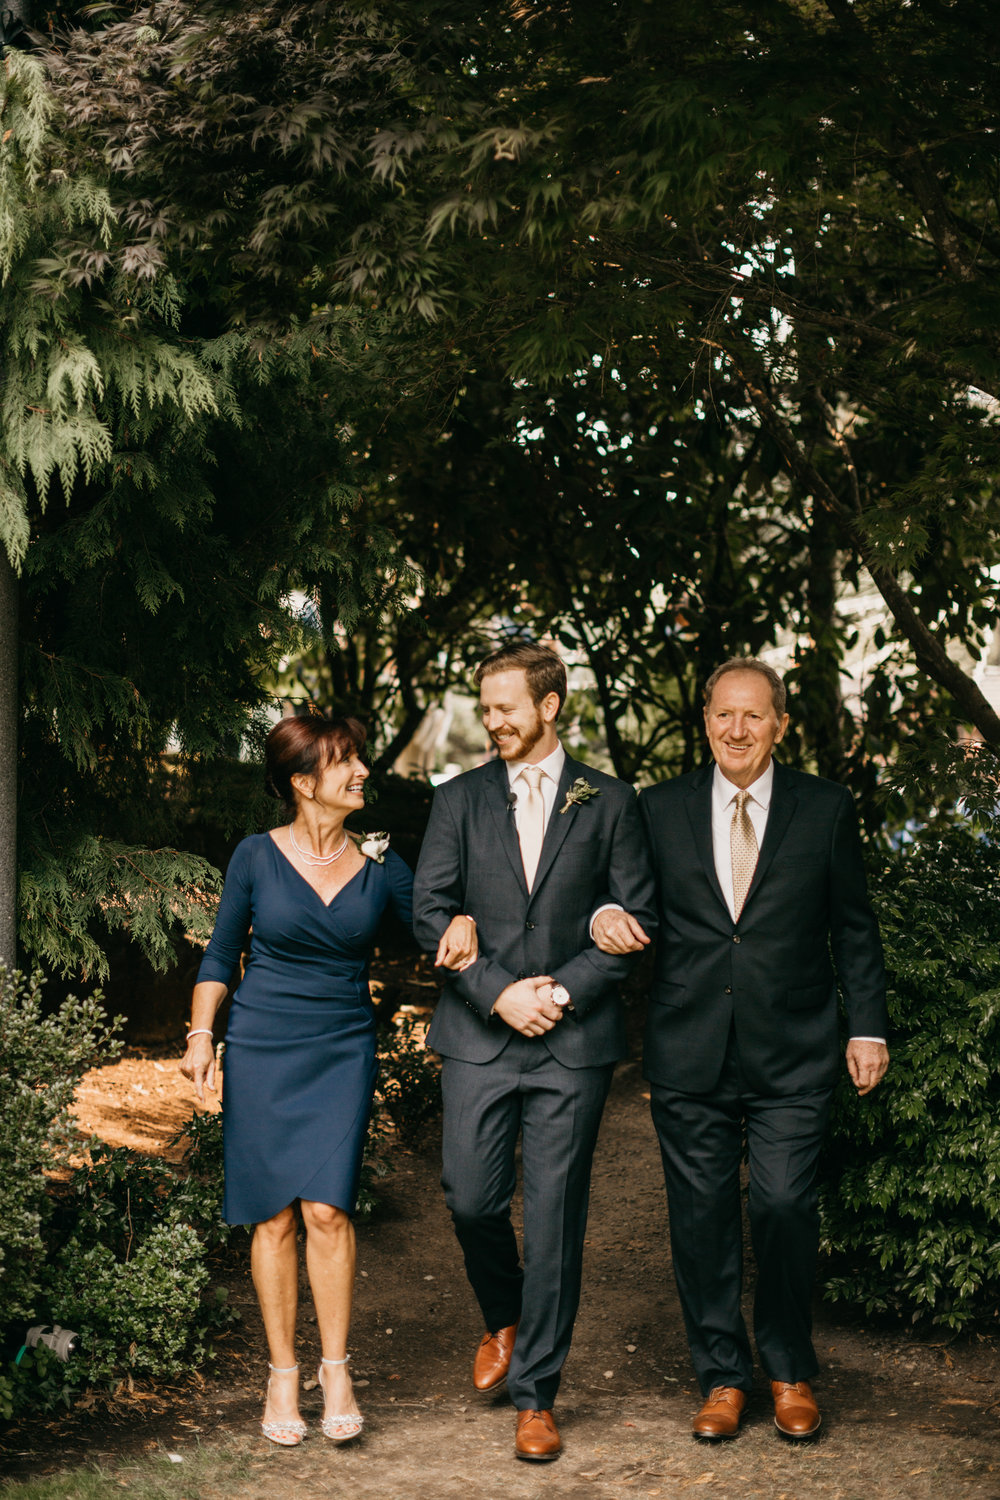 Max&SamPhoto_Seattle Wedding Photographer_Bellevue Robinswood House_061.jpg